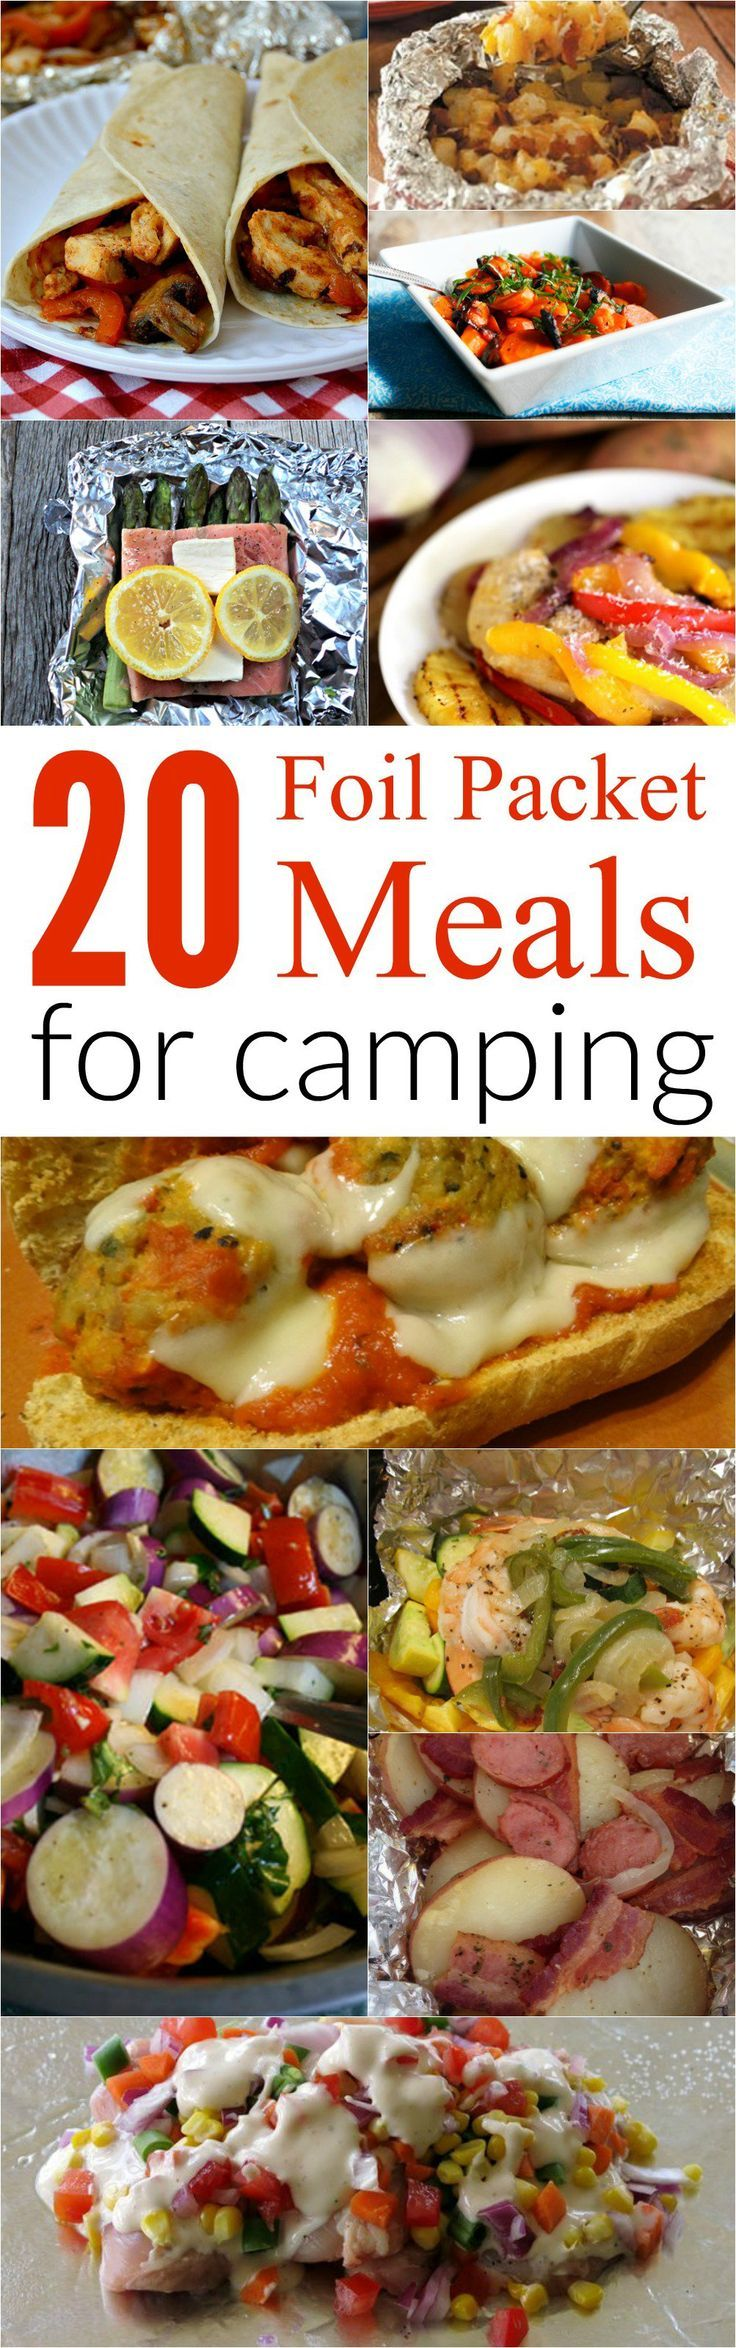 Top 20 Foil Meal Packet Recipes For Camping! Great Onthego Ideas